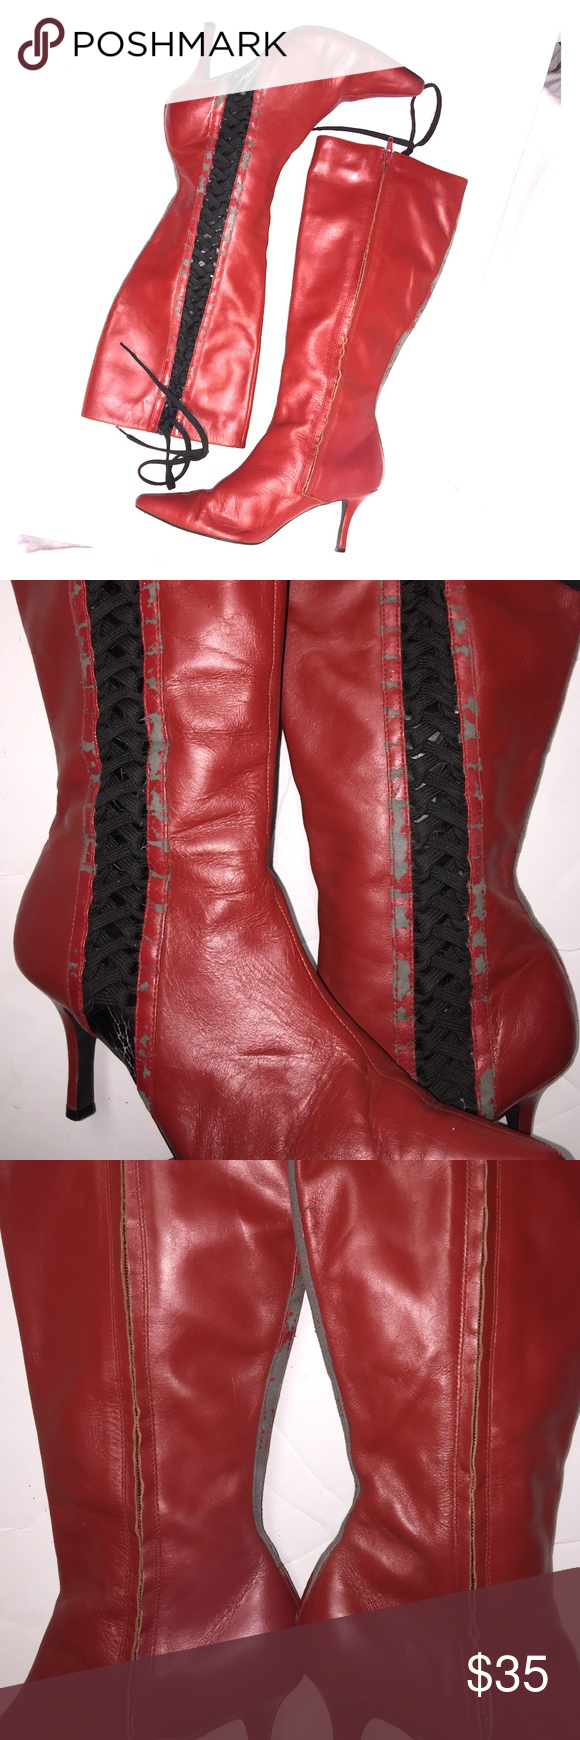 Susan Lucci red leather with black lace boots:TLC These are red leather with black lace up the souls and the taps are in great condition the leather has rubbed off quite bad all over the boot especially on the sides and in the back I'm positive these can be re-dyed they are leather upper size 10 W man-made materials for the balance of the heel measures 3 inches these are priced accordingly d's do you need TLC SUSAN LUCCI Shoes Heeled Boots